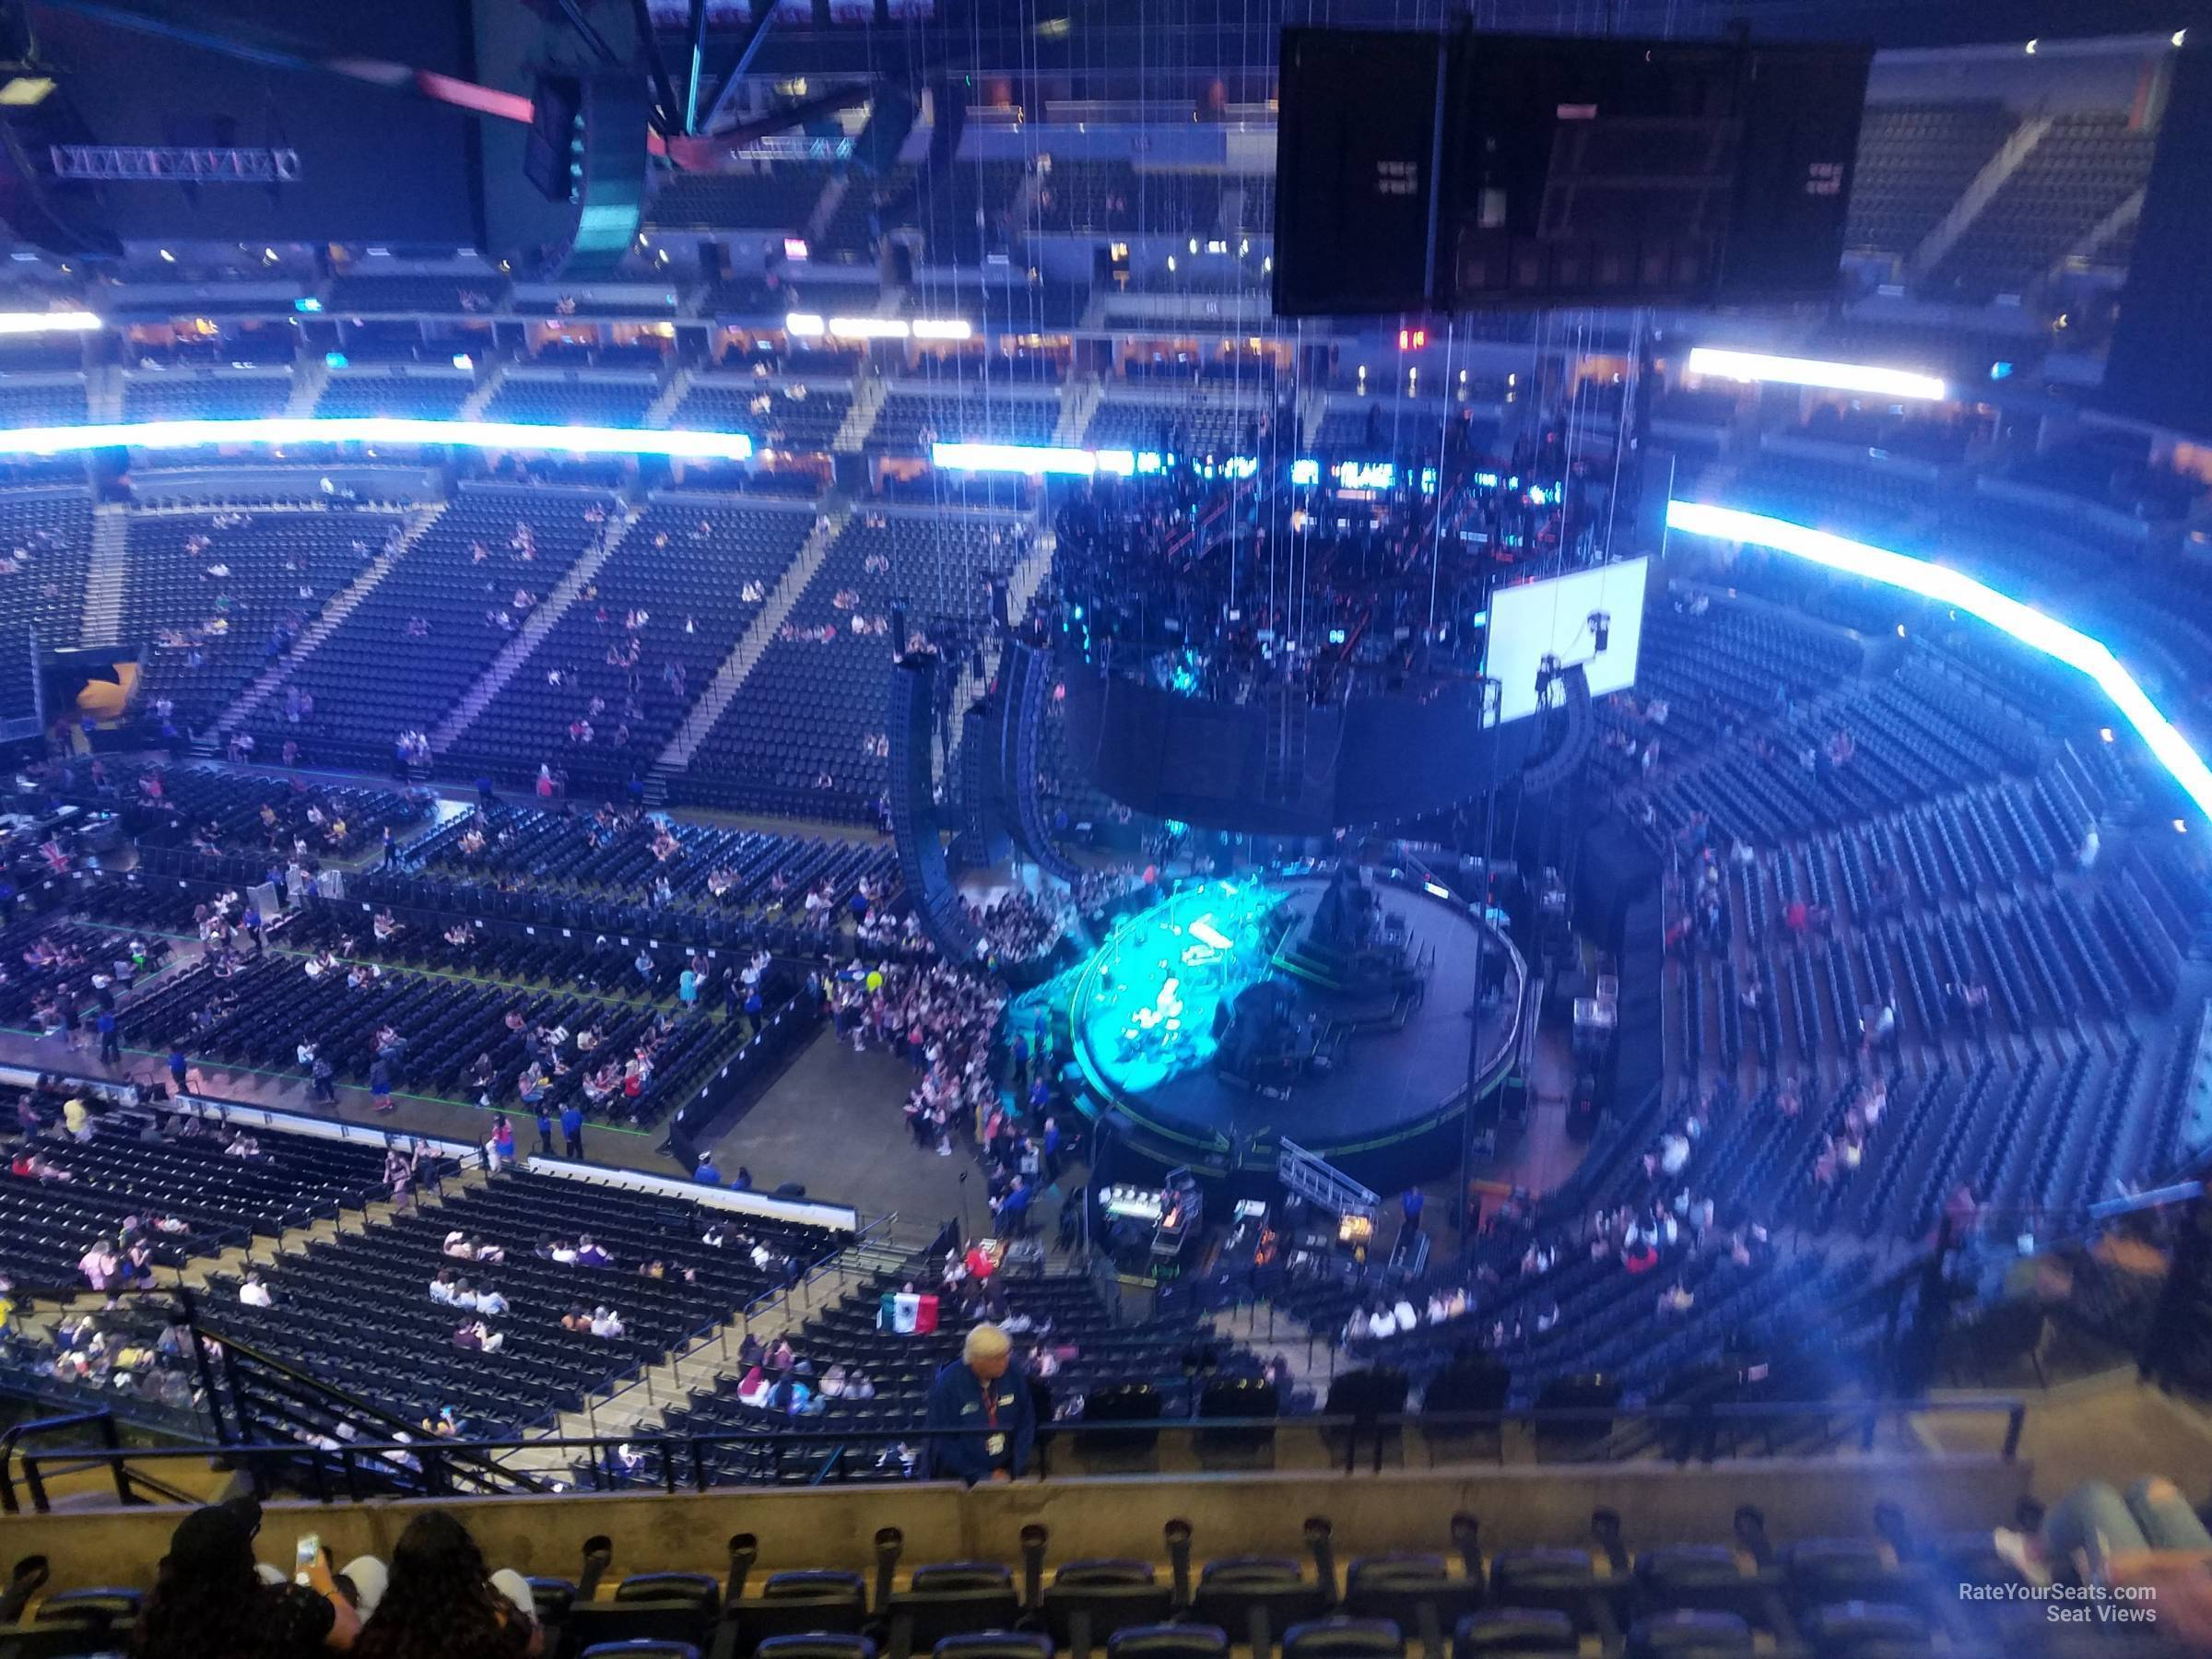 Pepsi Center: Pepsi Center Section 374 Concert Seating